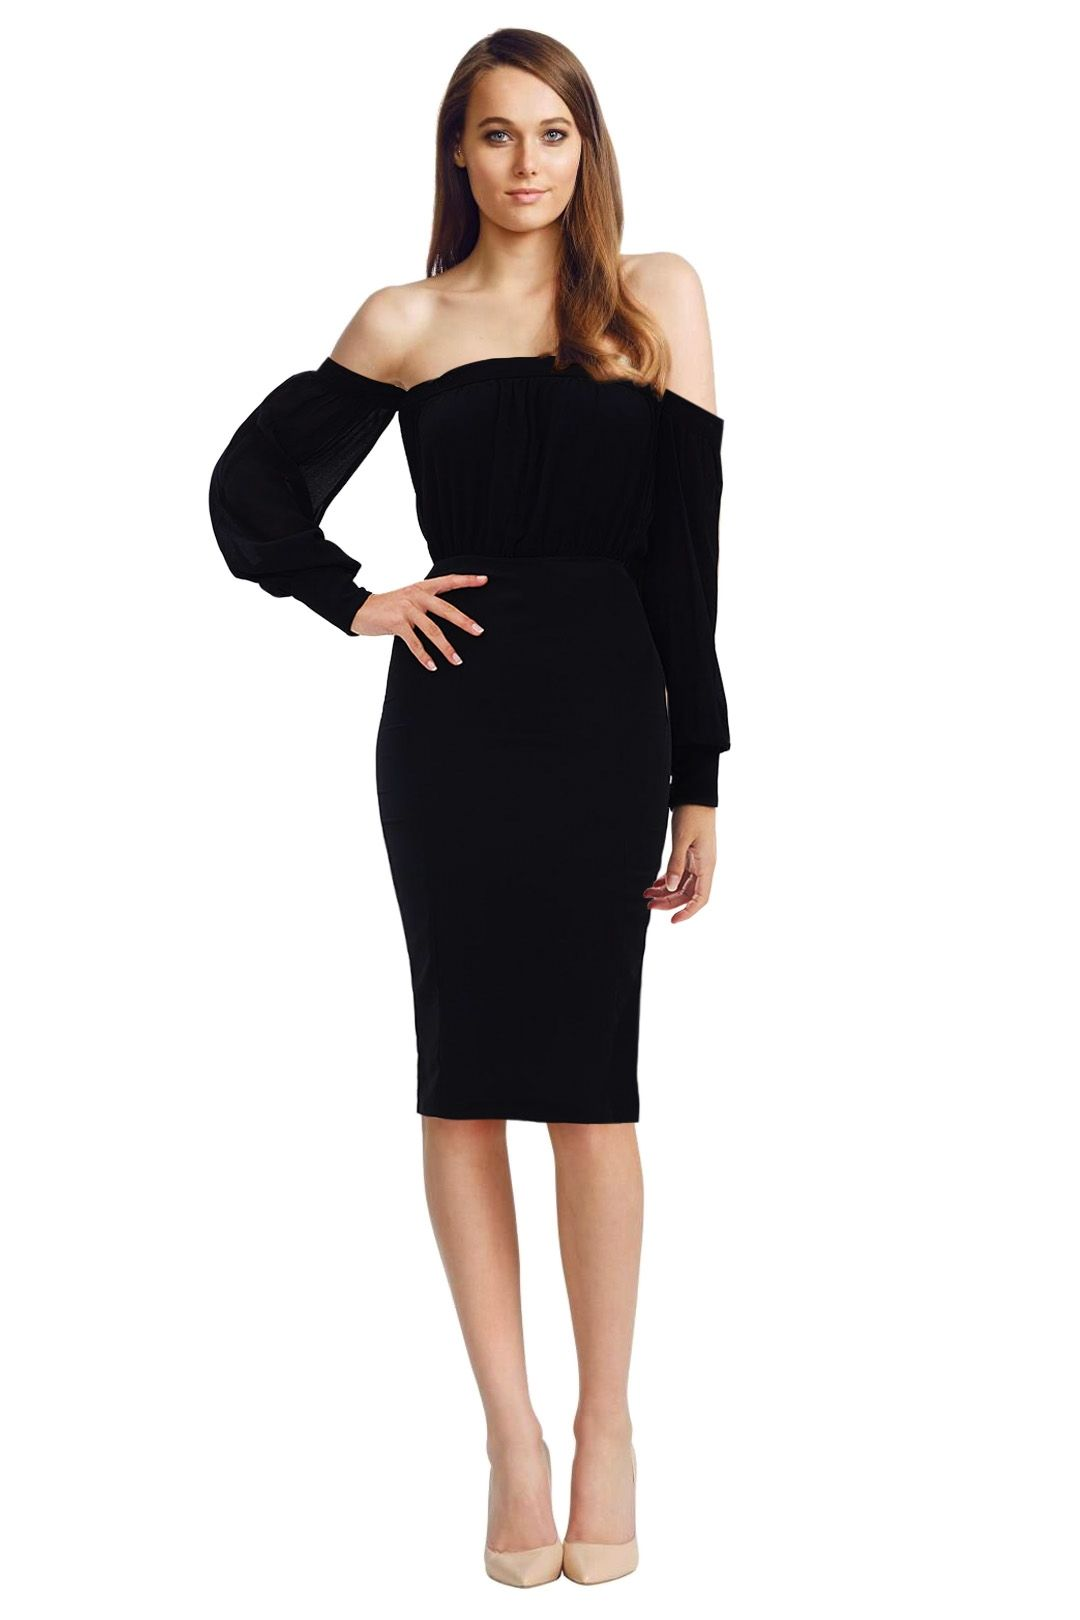 Misha Collection - Adia Dress - Black - Front